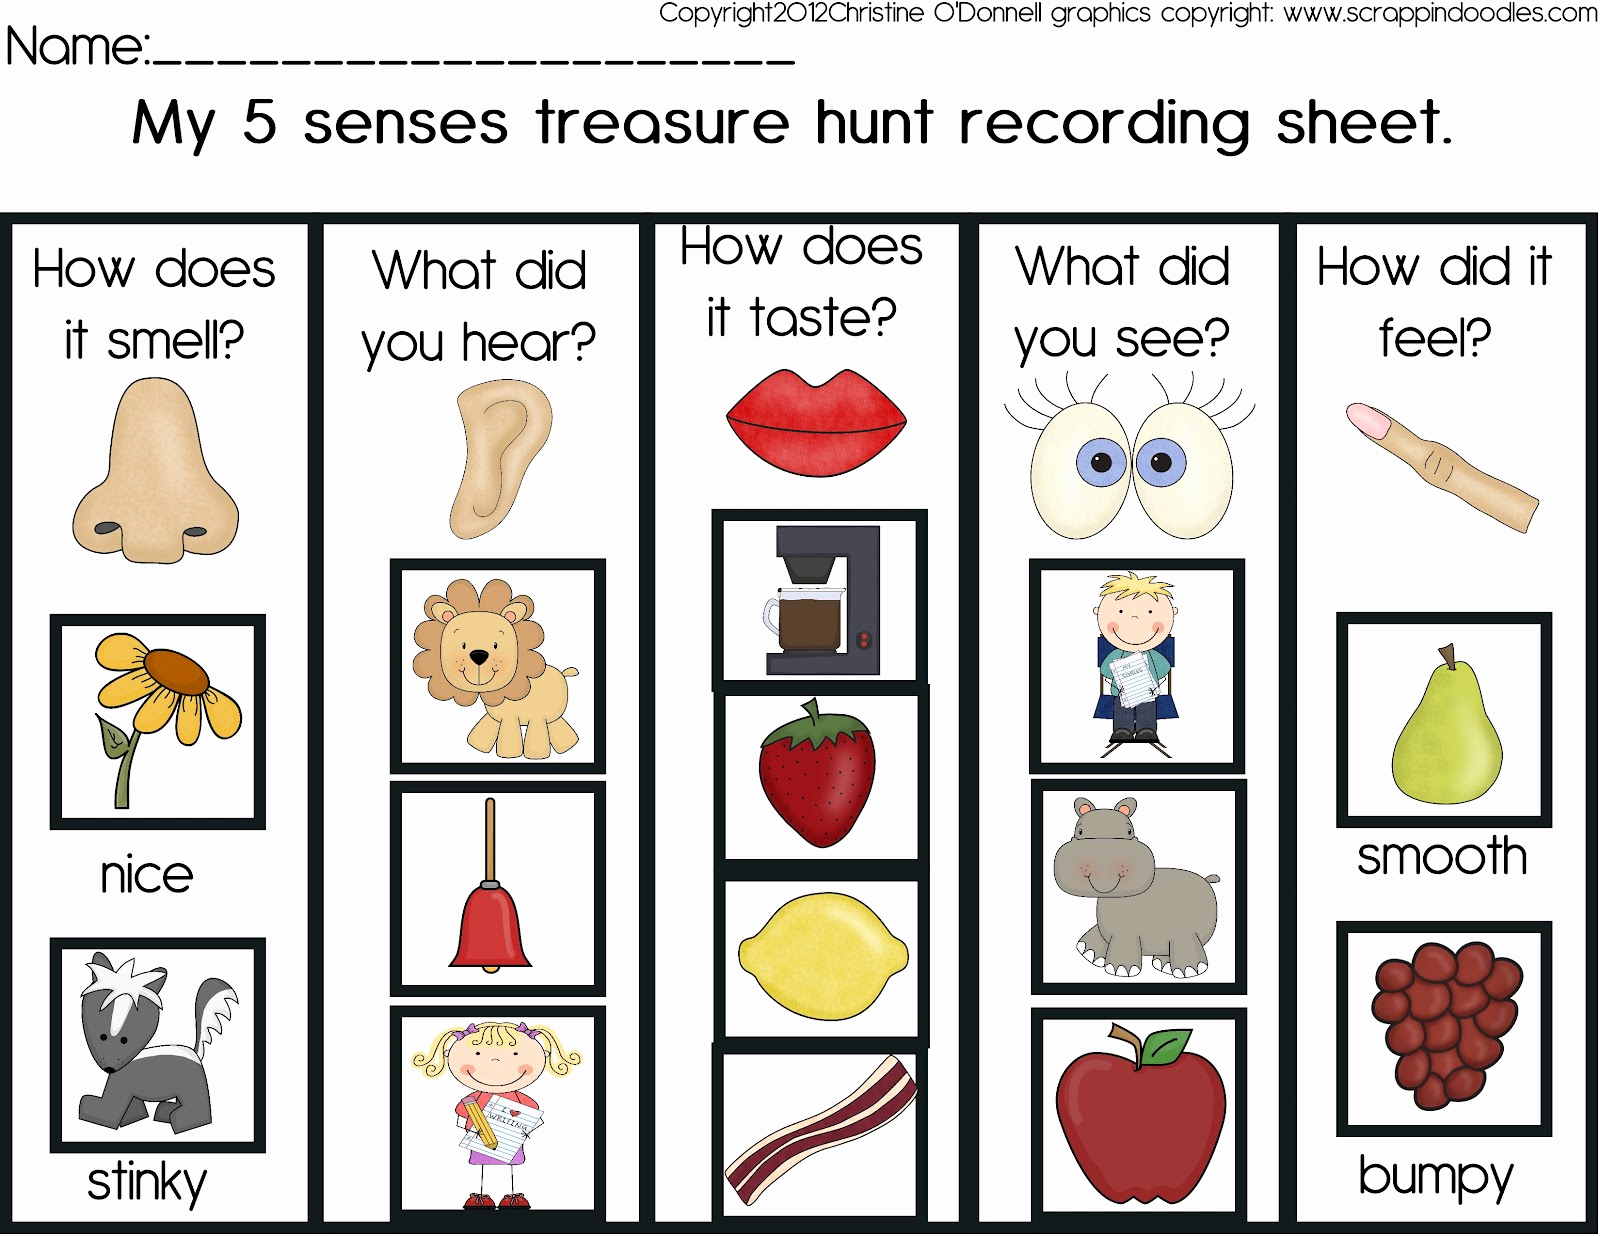 5 Senses Worksheets for Kindergarten Best Of 5 Senses Treasure Hunt and A Freebie